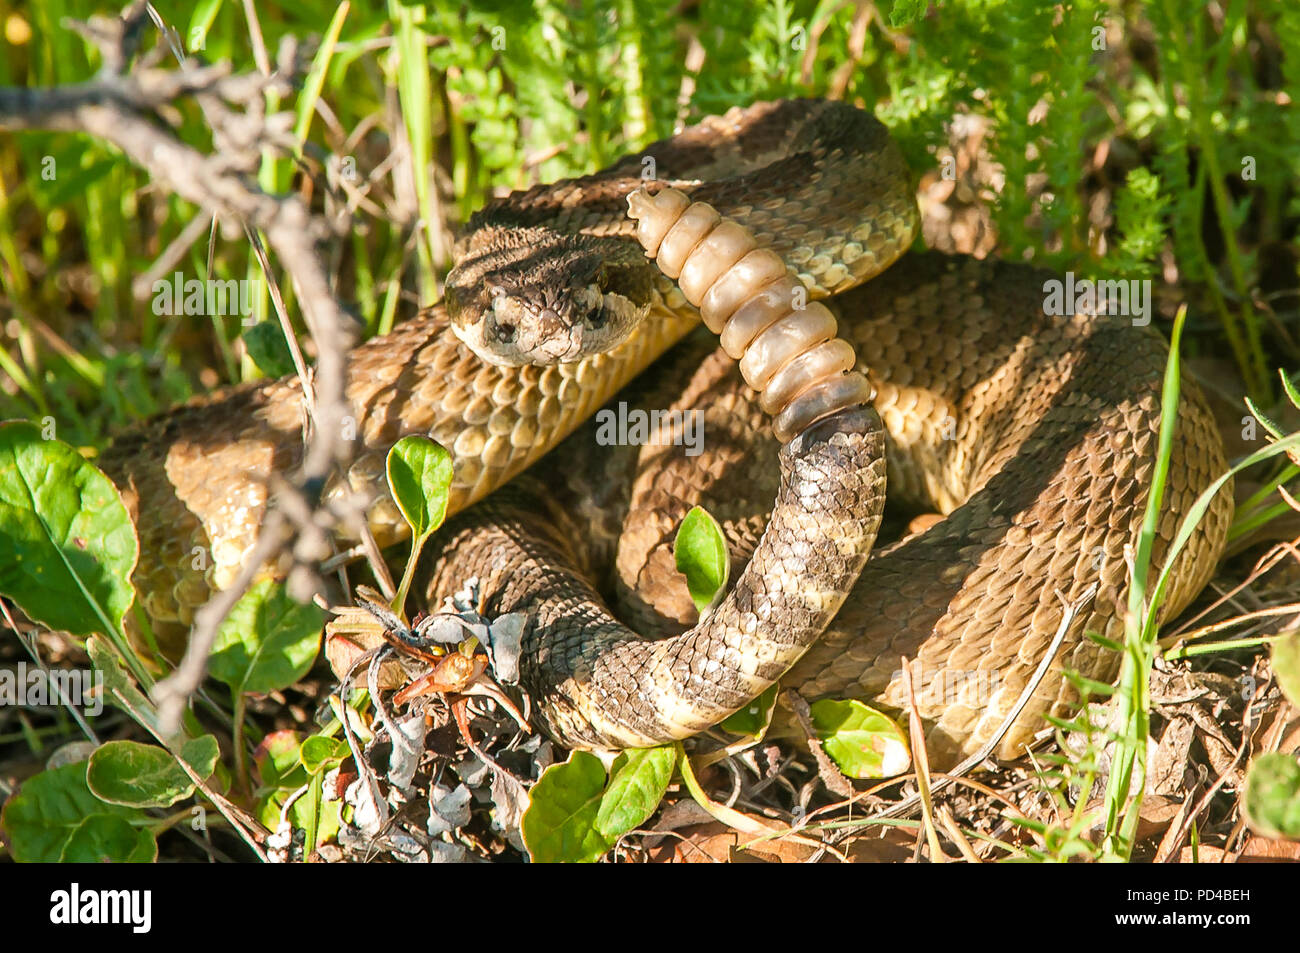 Rattlesnake poised to attack - Stock Image